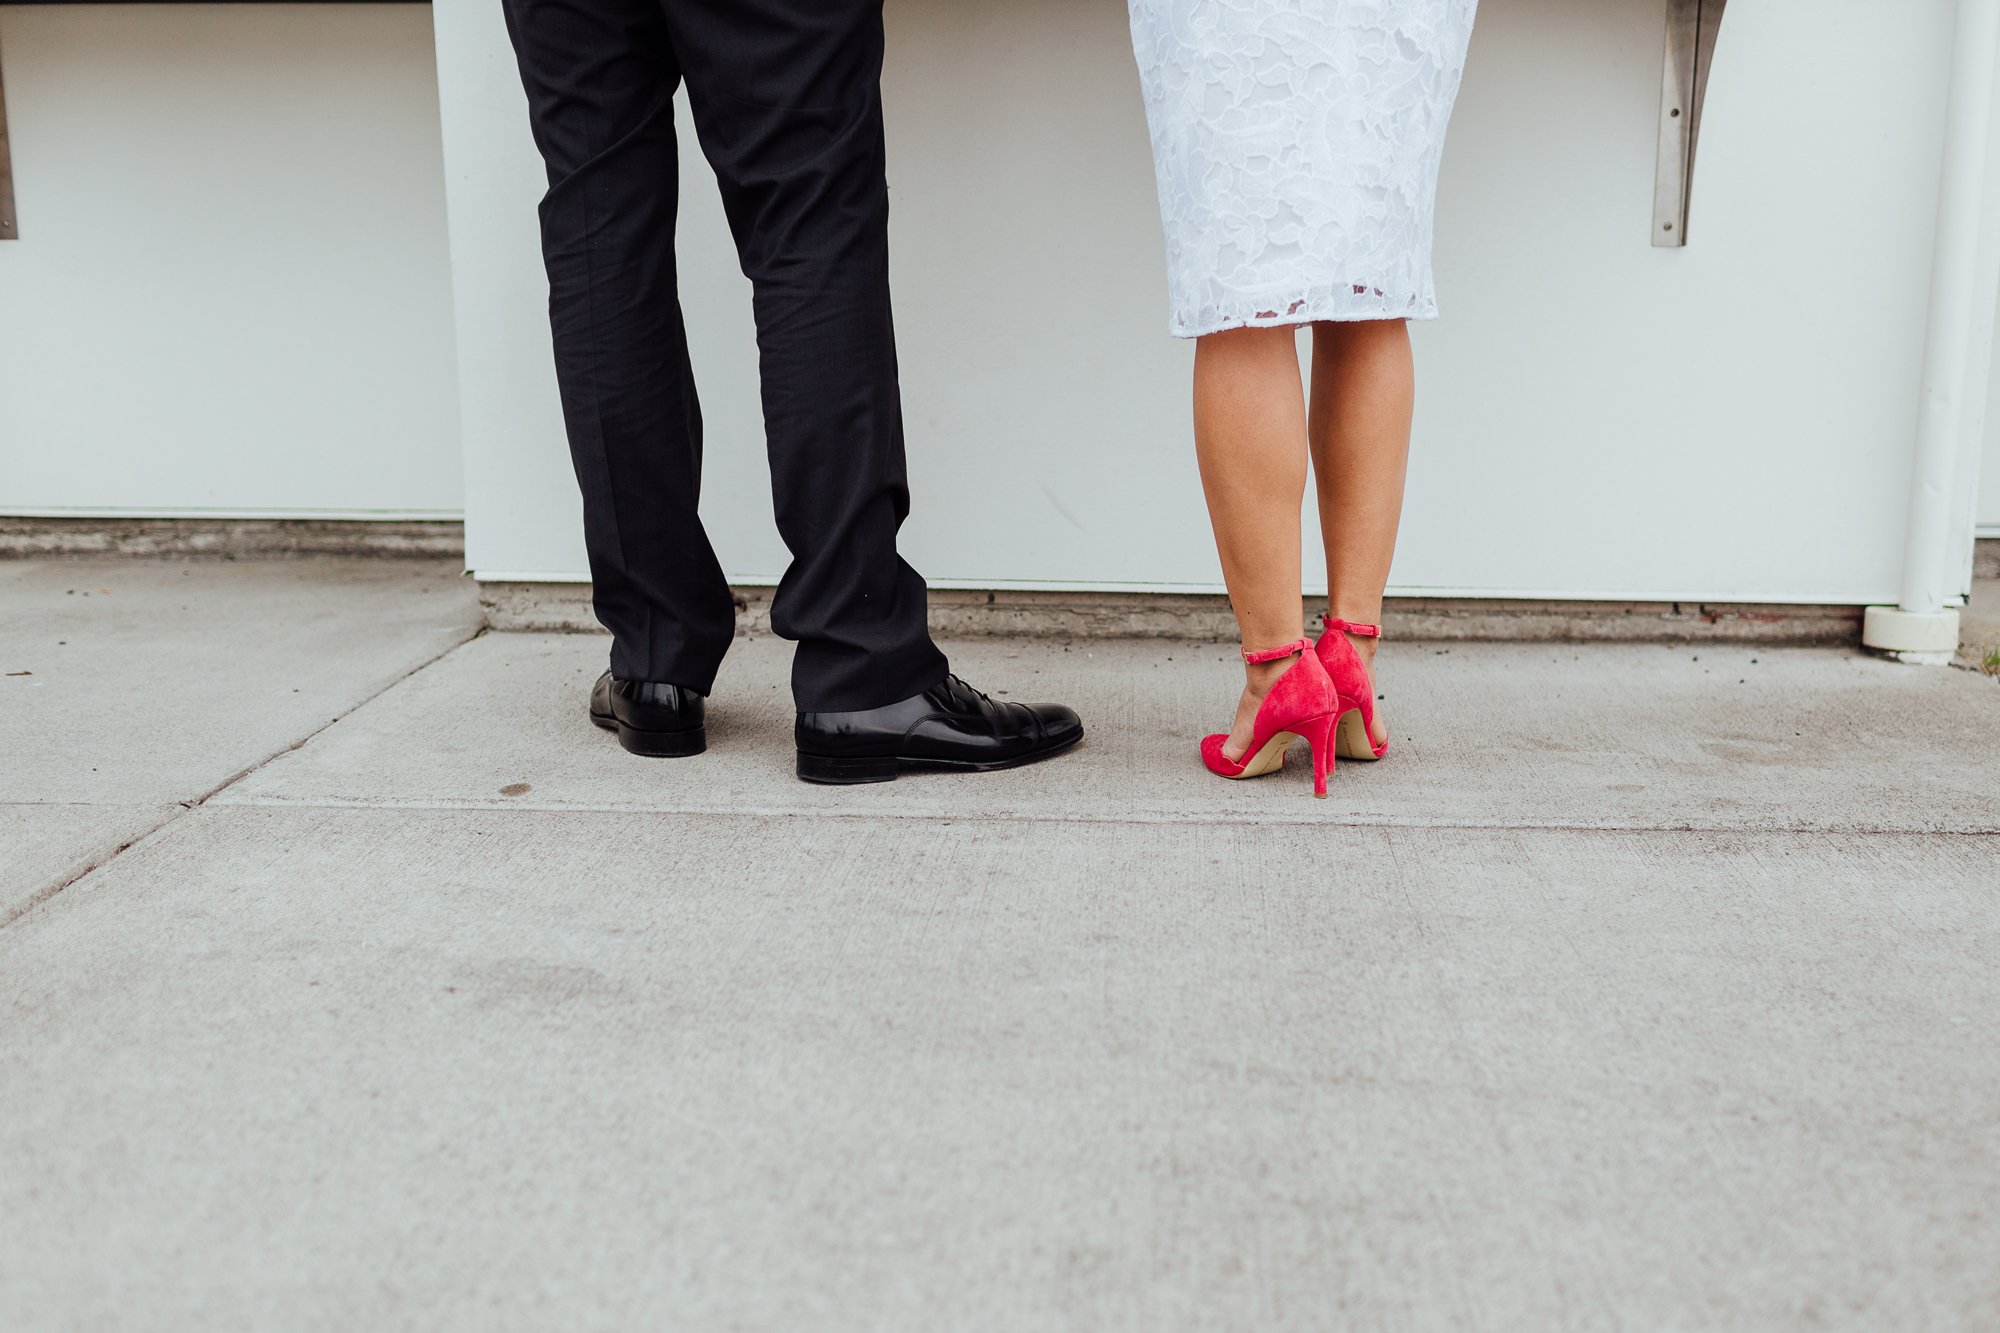 Seattle Rooftop Courthouse Wedding Photos by Krista Welch00015.jpg